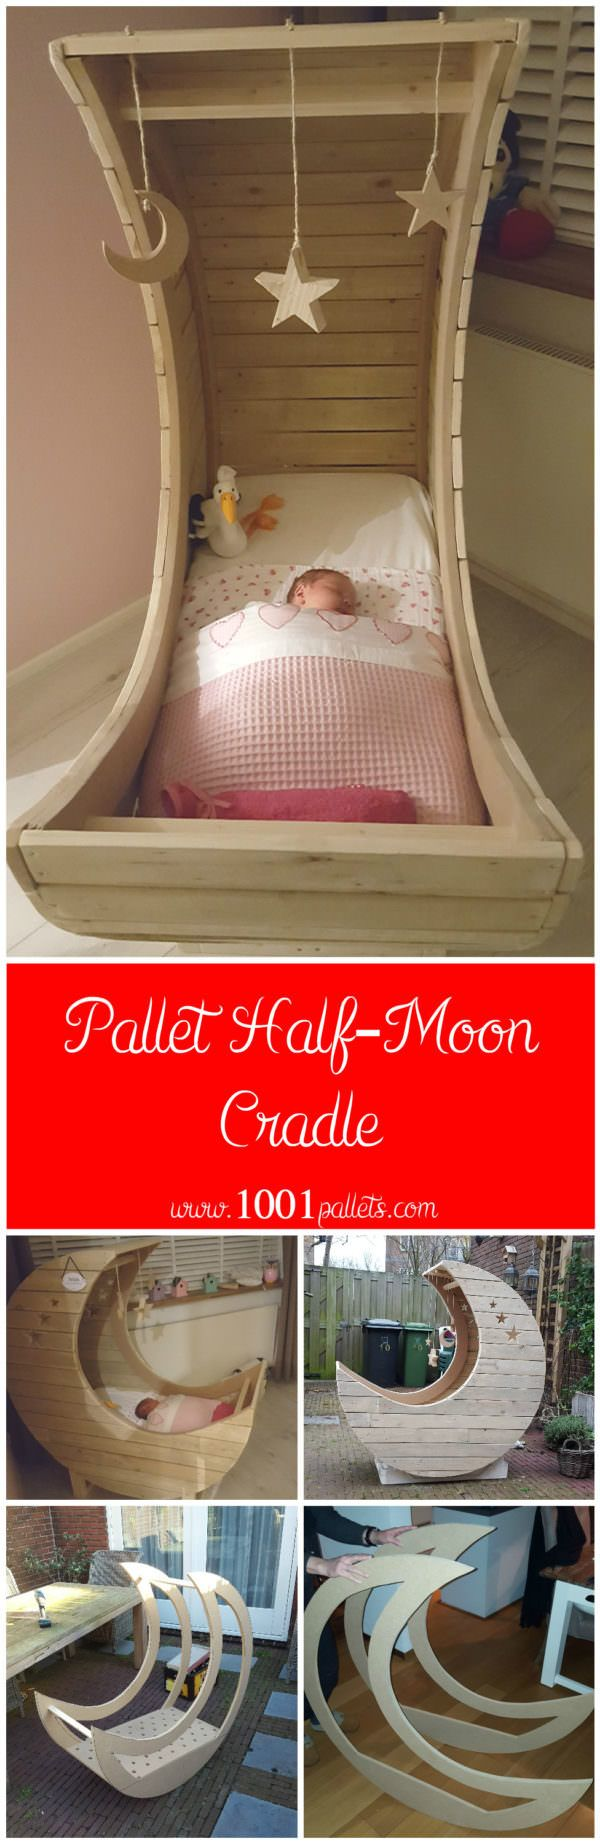 1001 pallets pallet kids playground here is a home made playground - Homemade Pallet Half Moon Cradle Used Pallets1001